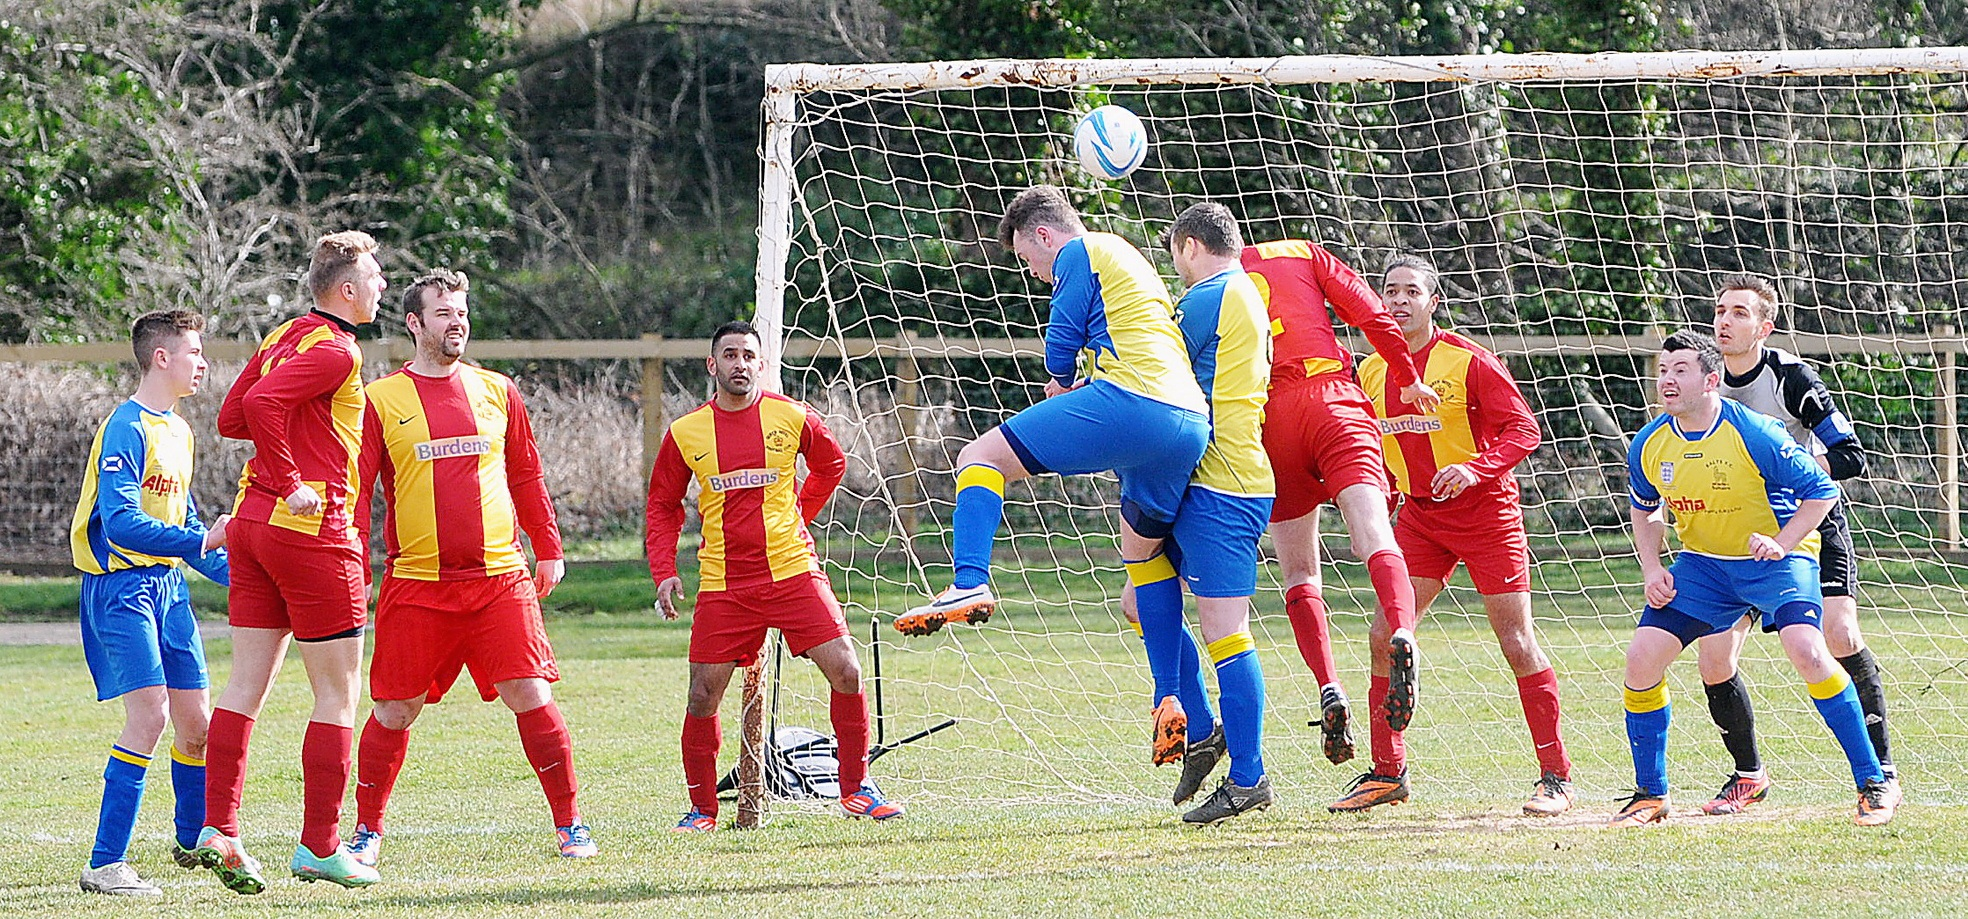 Cup final to be an all-Bradford Sunday Alliance League showdown